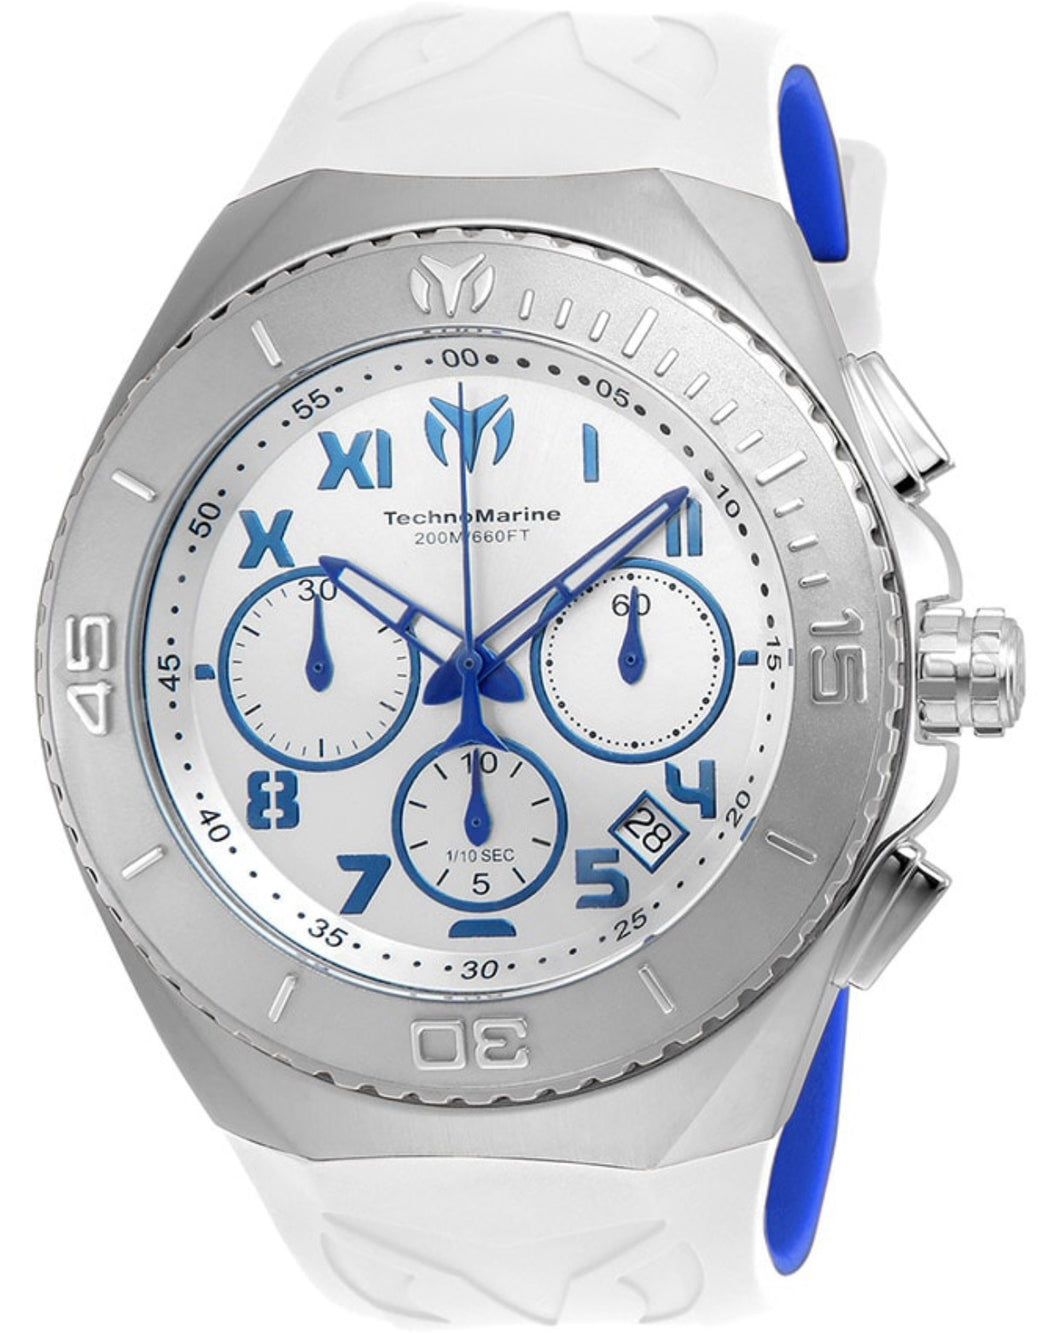 TECHNOMARINE MANTA MENS QUARTZ 48MM STAINLESS STEEL CASE SILVER, BLUE DIAL - MODEL TM-215063 - Boutique Watches & More